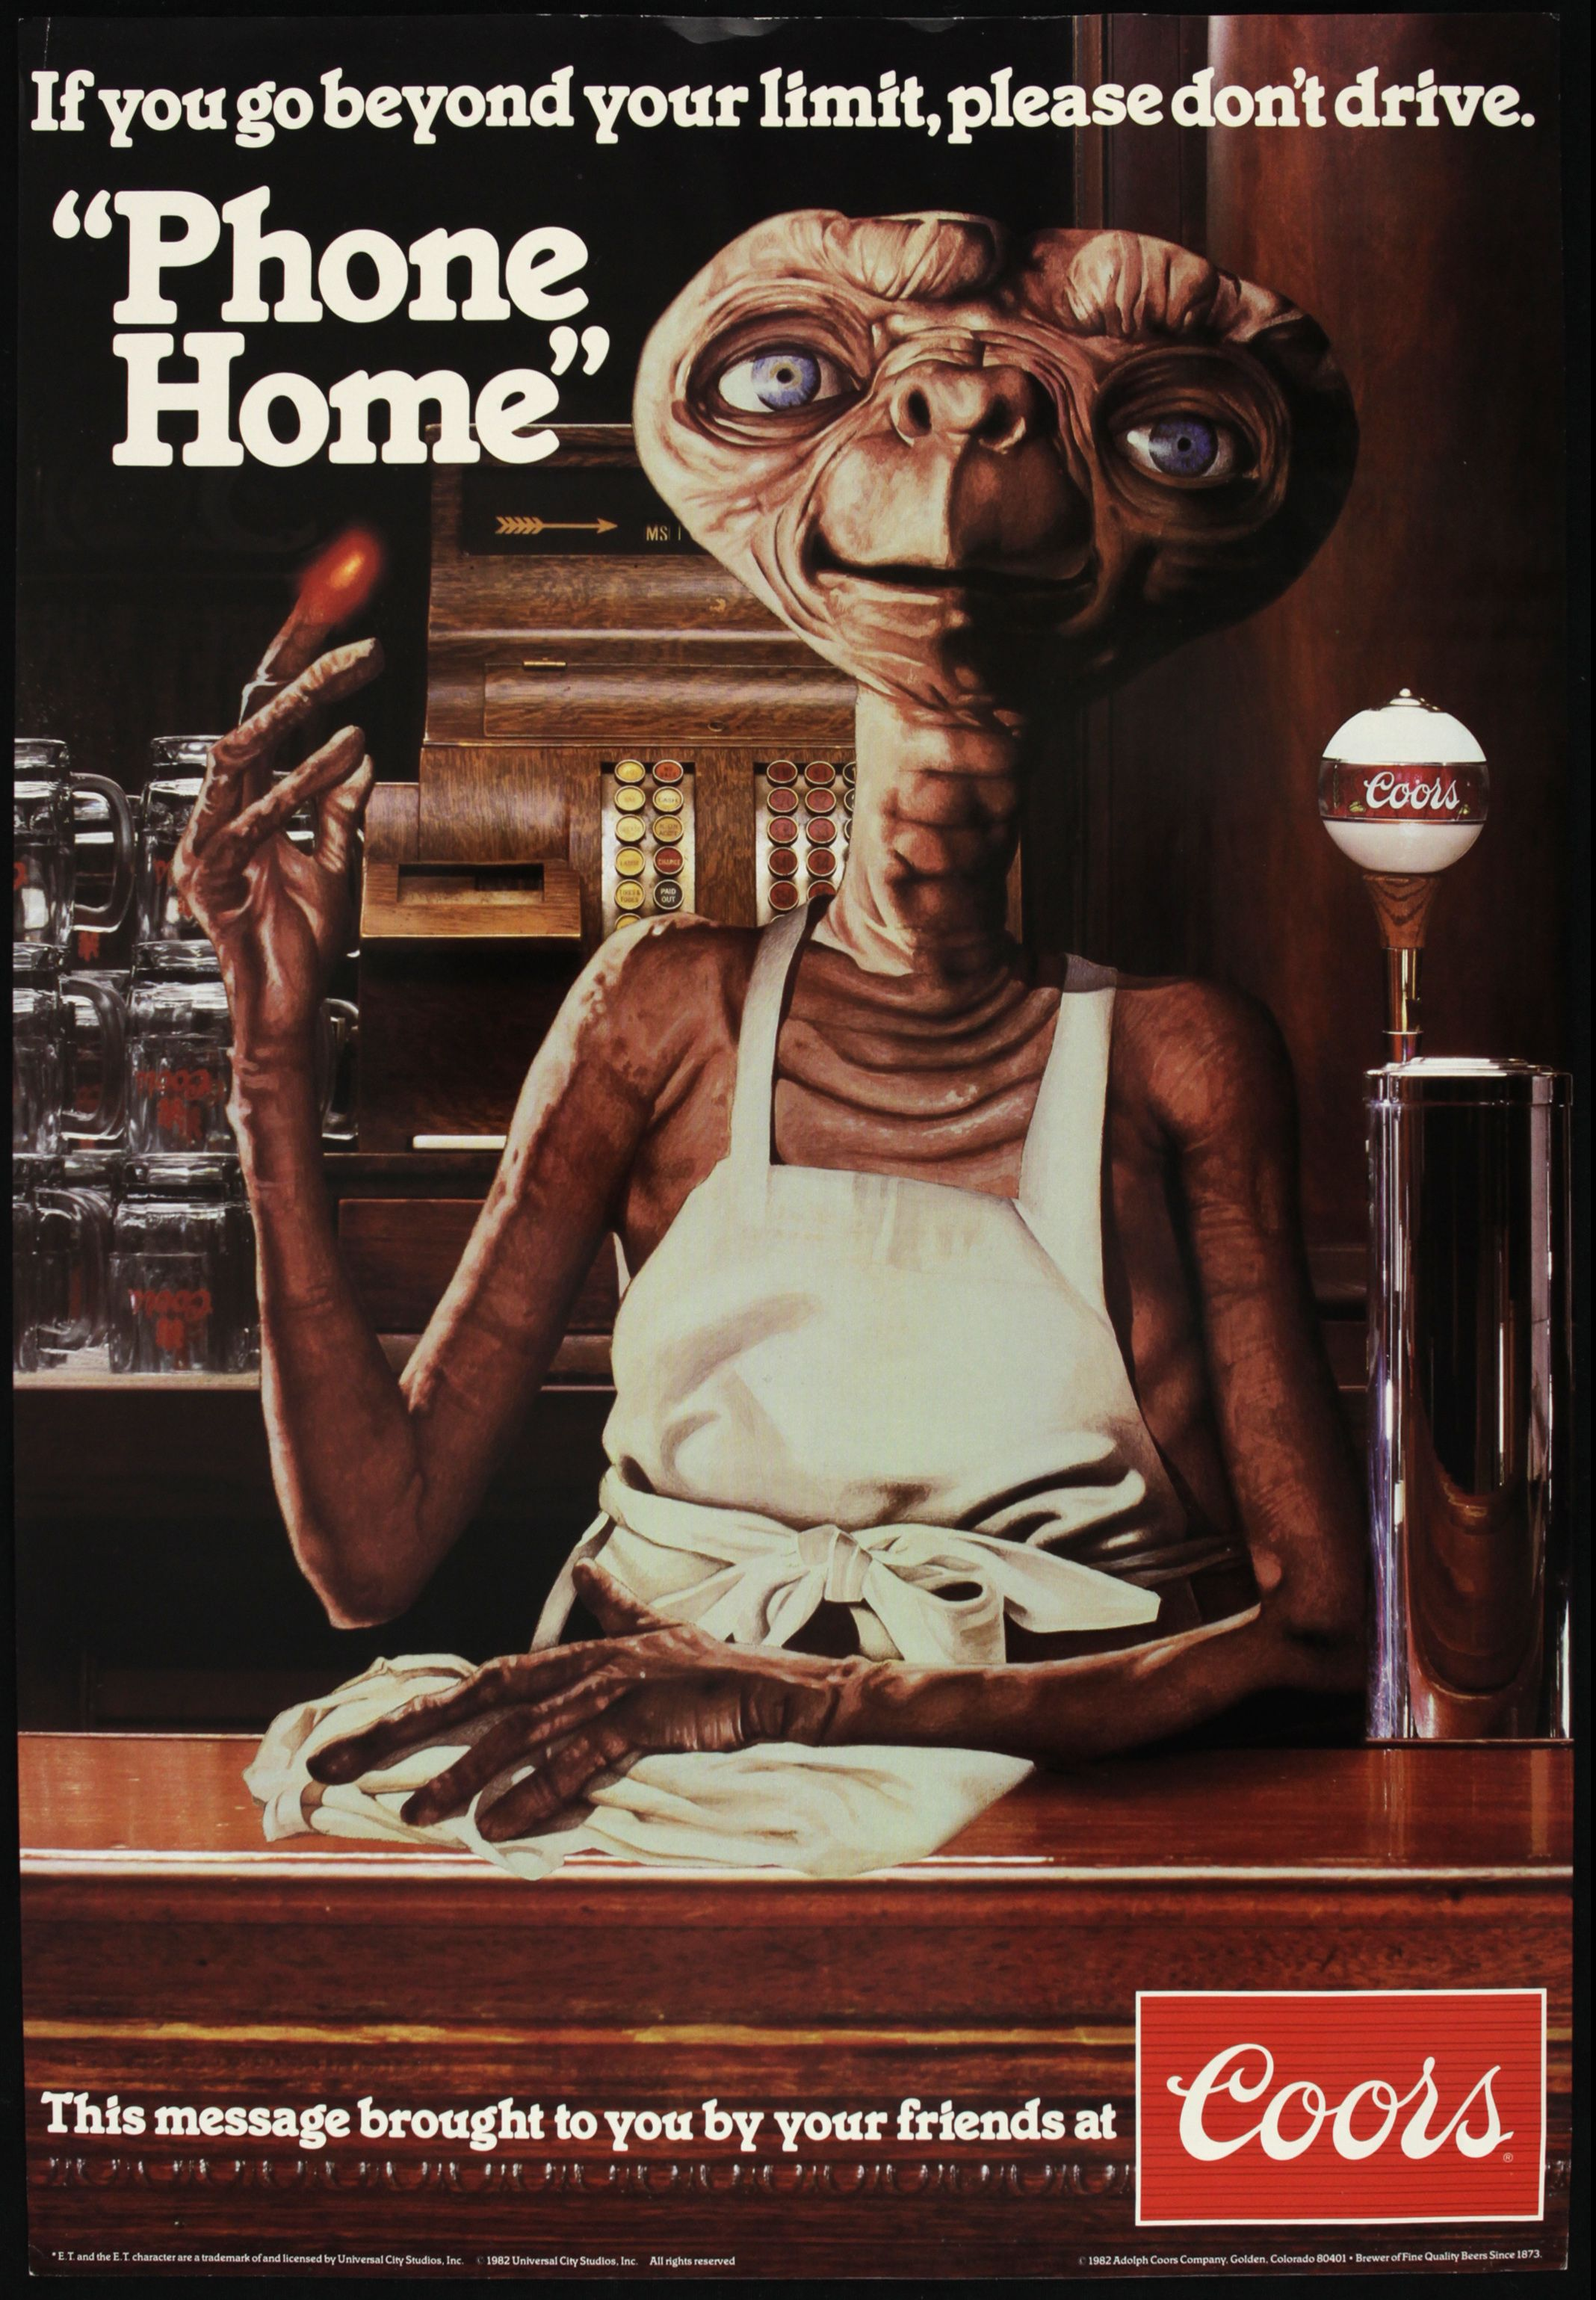 Extraterrestrial Advice On Drunk Driving